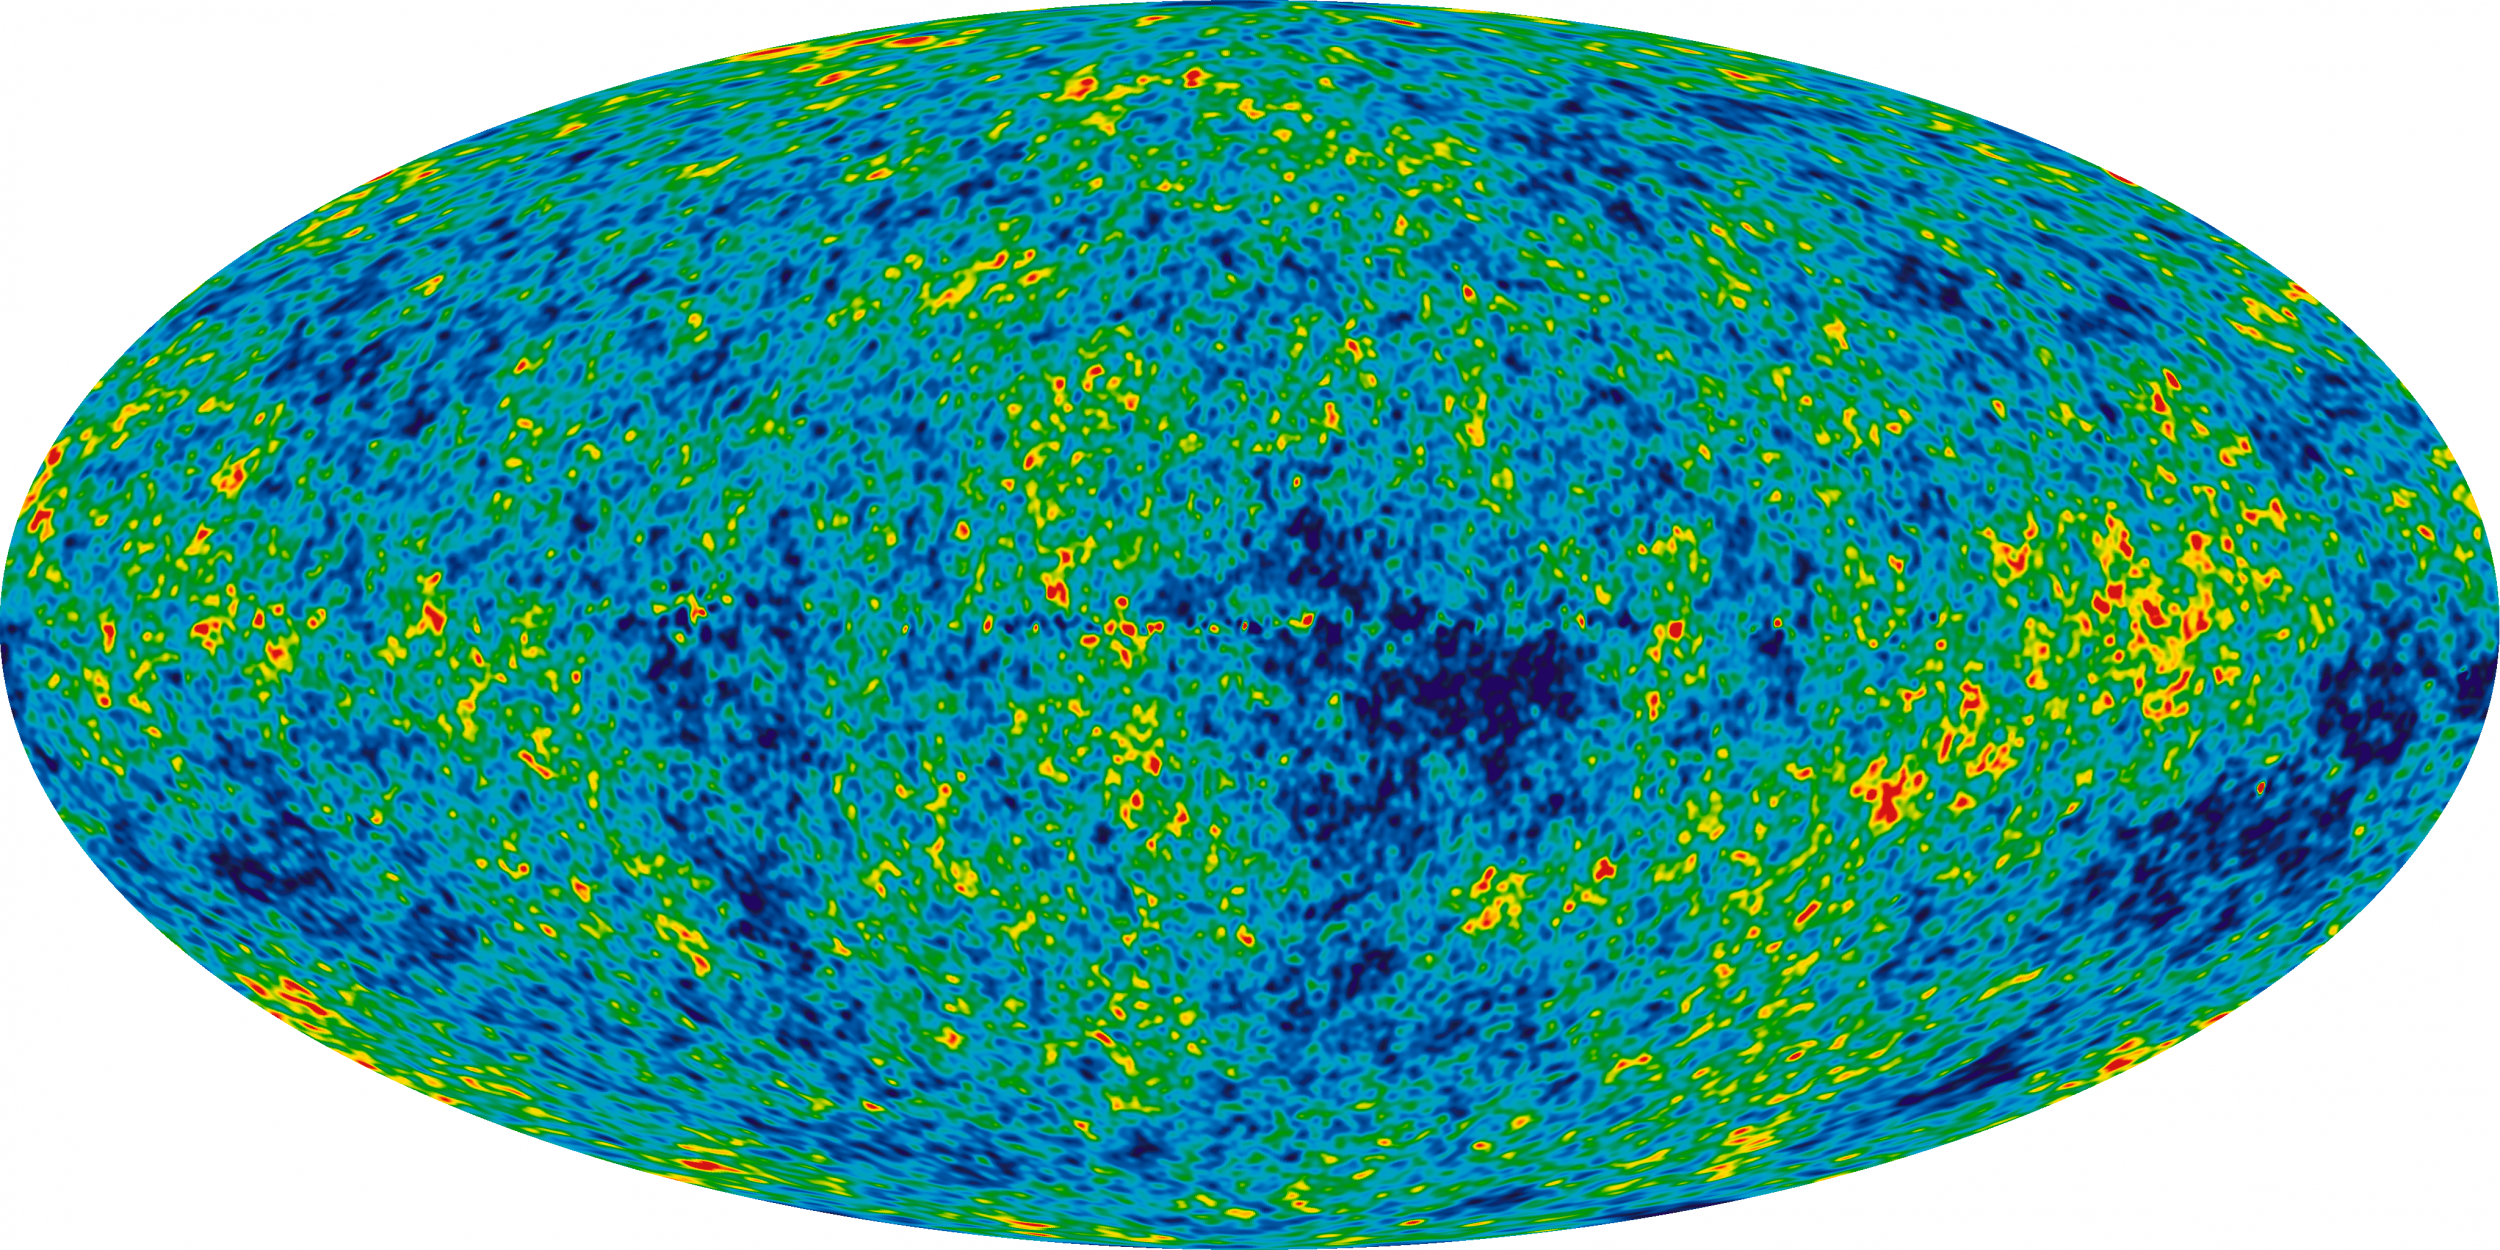 12_04_cosmic_microwave_background